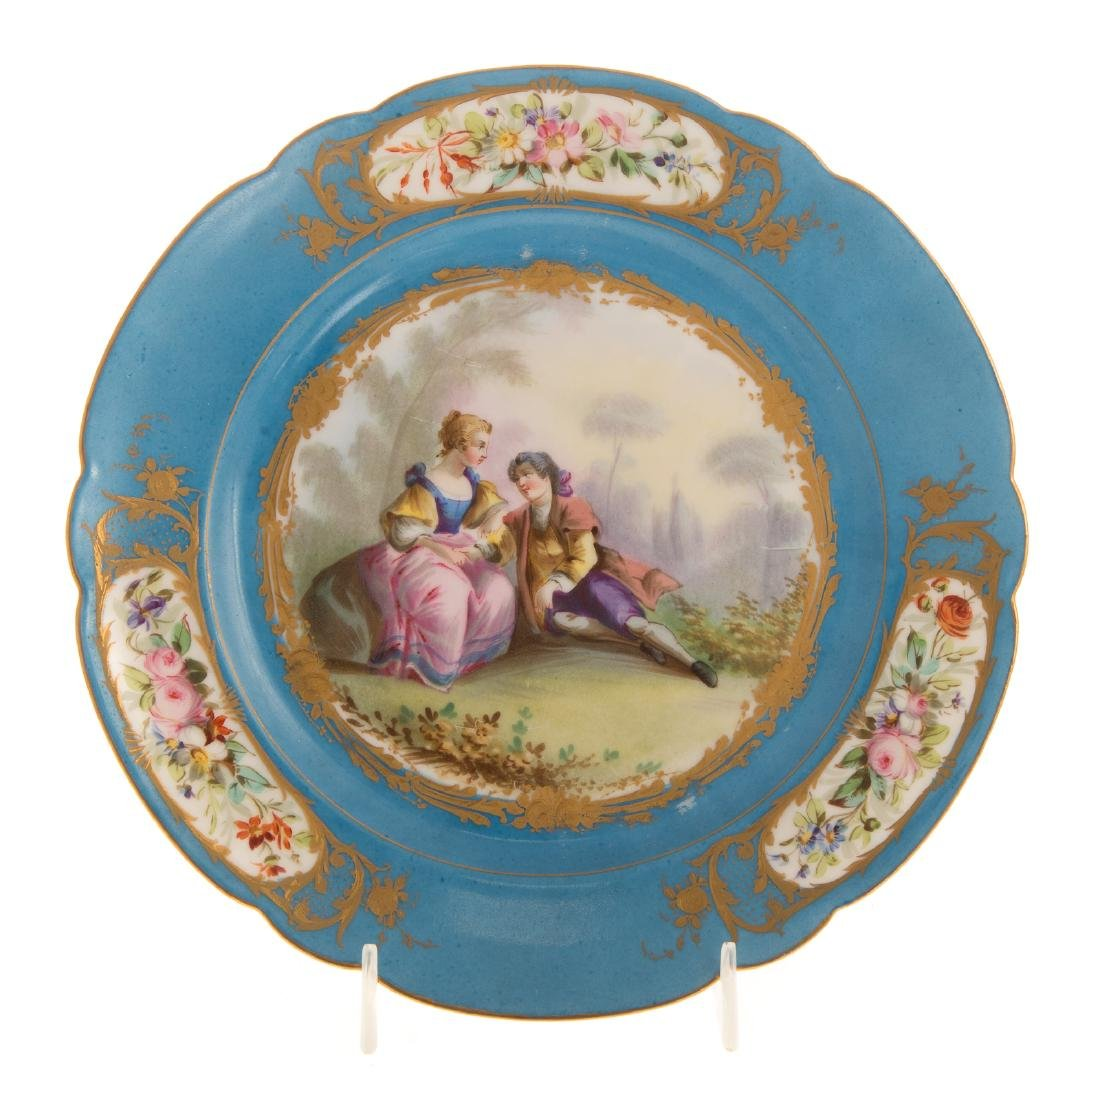 12 Sevres porcelain plates and charger - 3